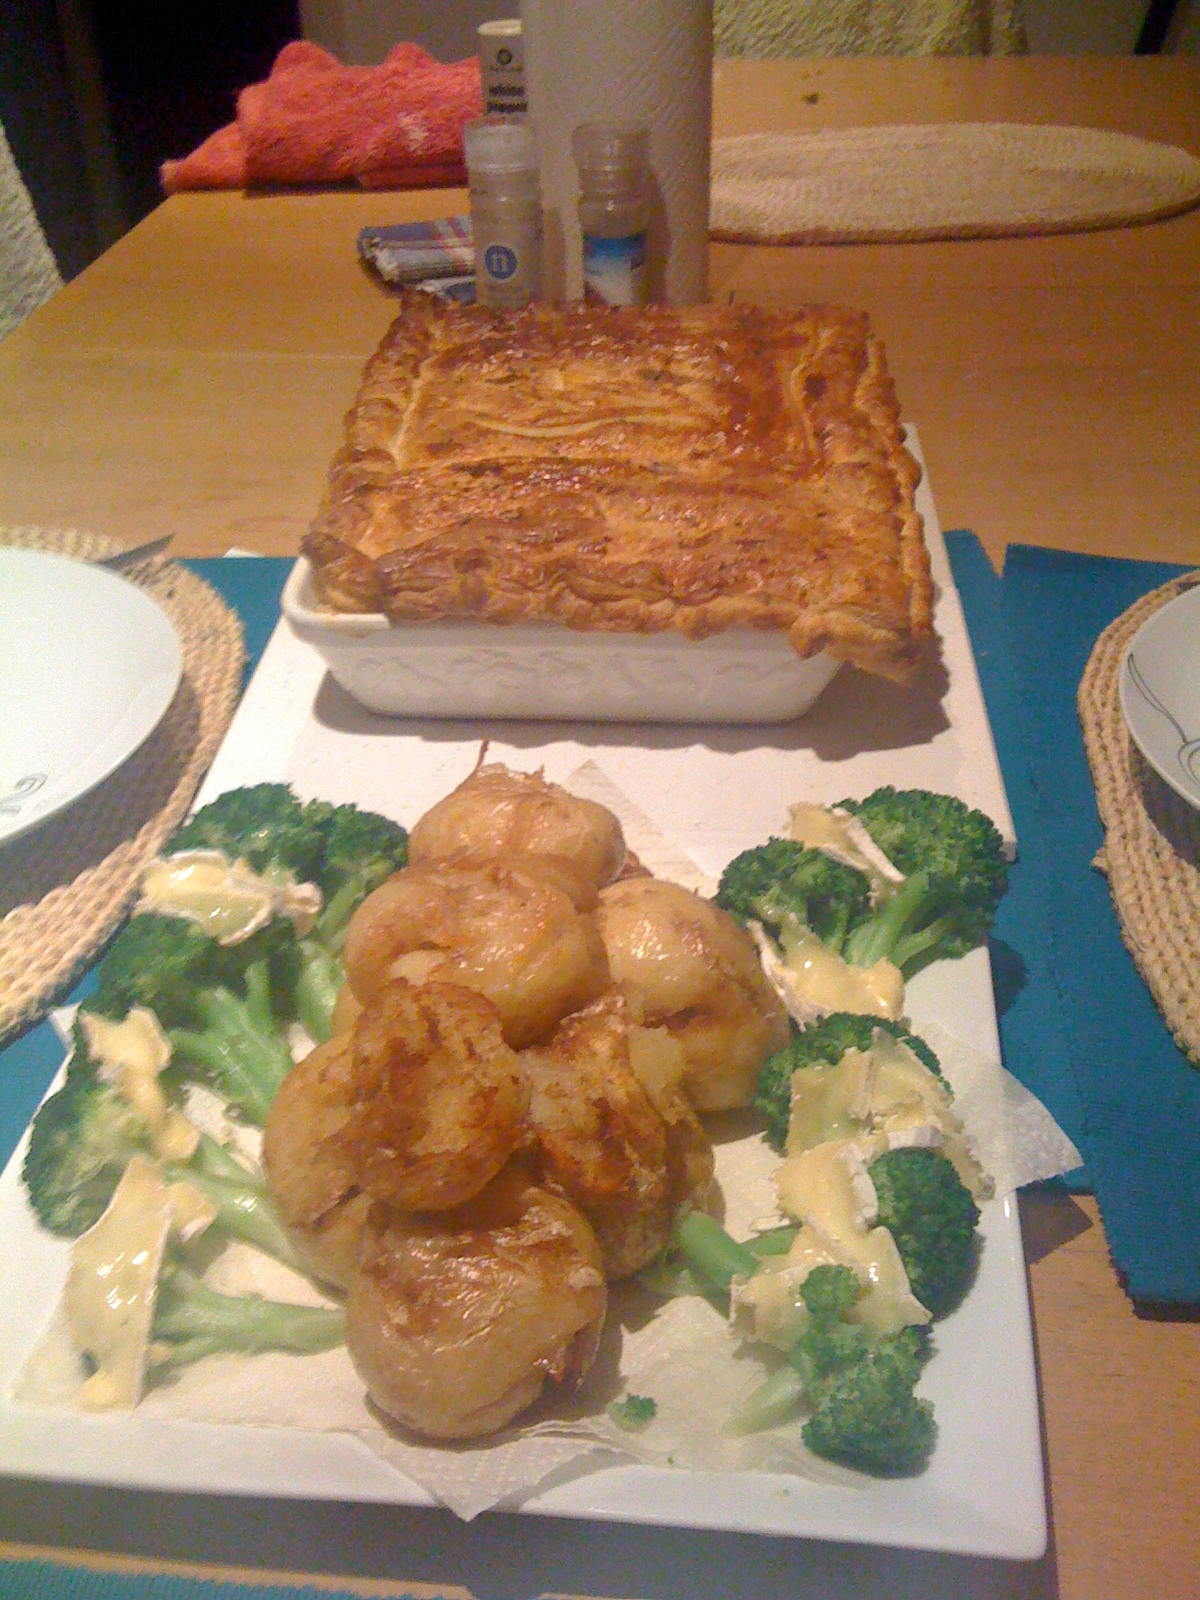 Brisbane Qld Australia  :: Chicken and Leek pie with Smashed Potatoes and Steamed Broccoli with King Island Brie